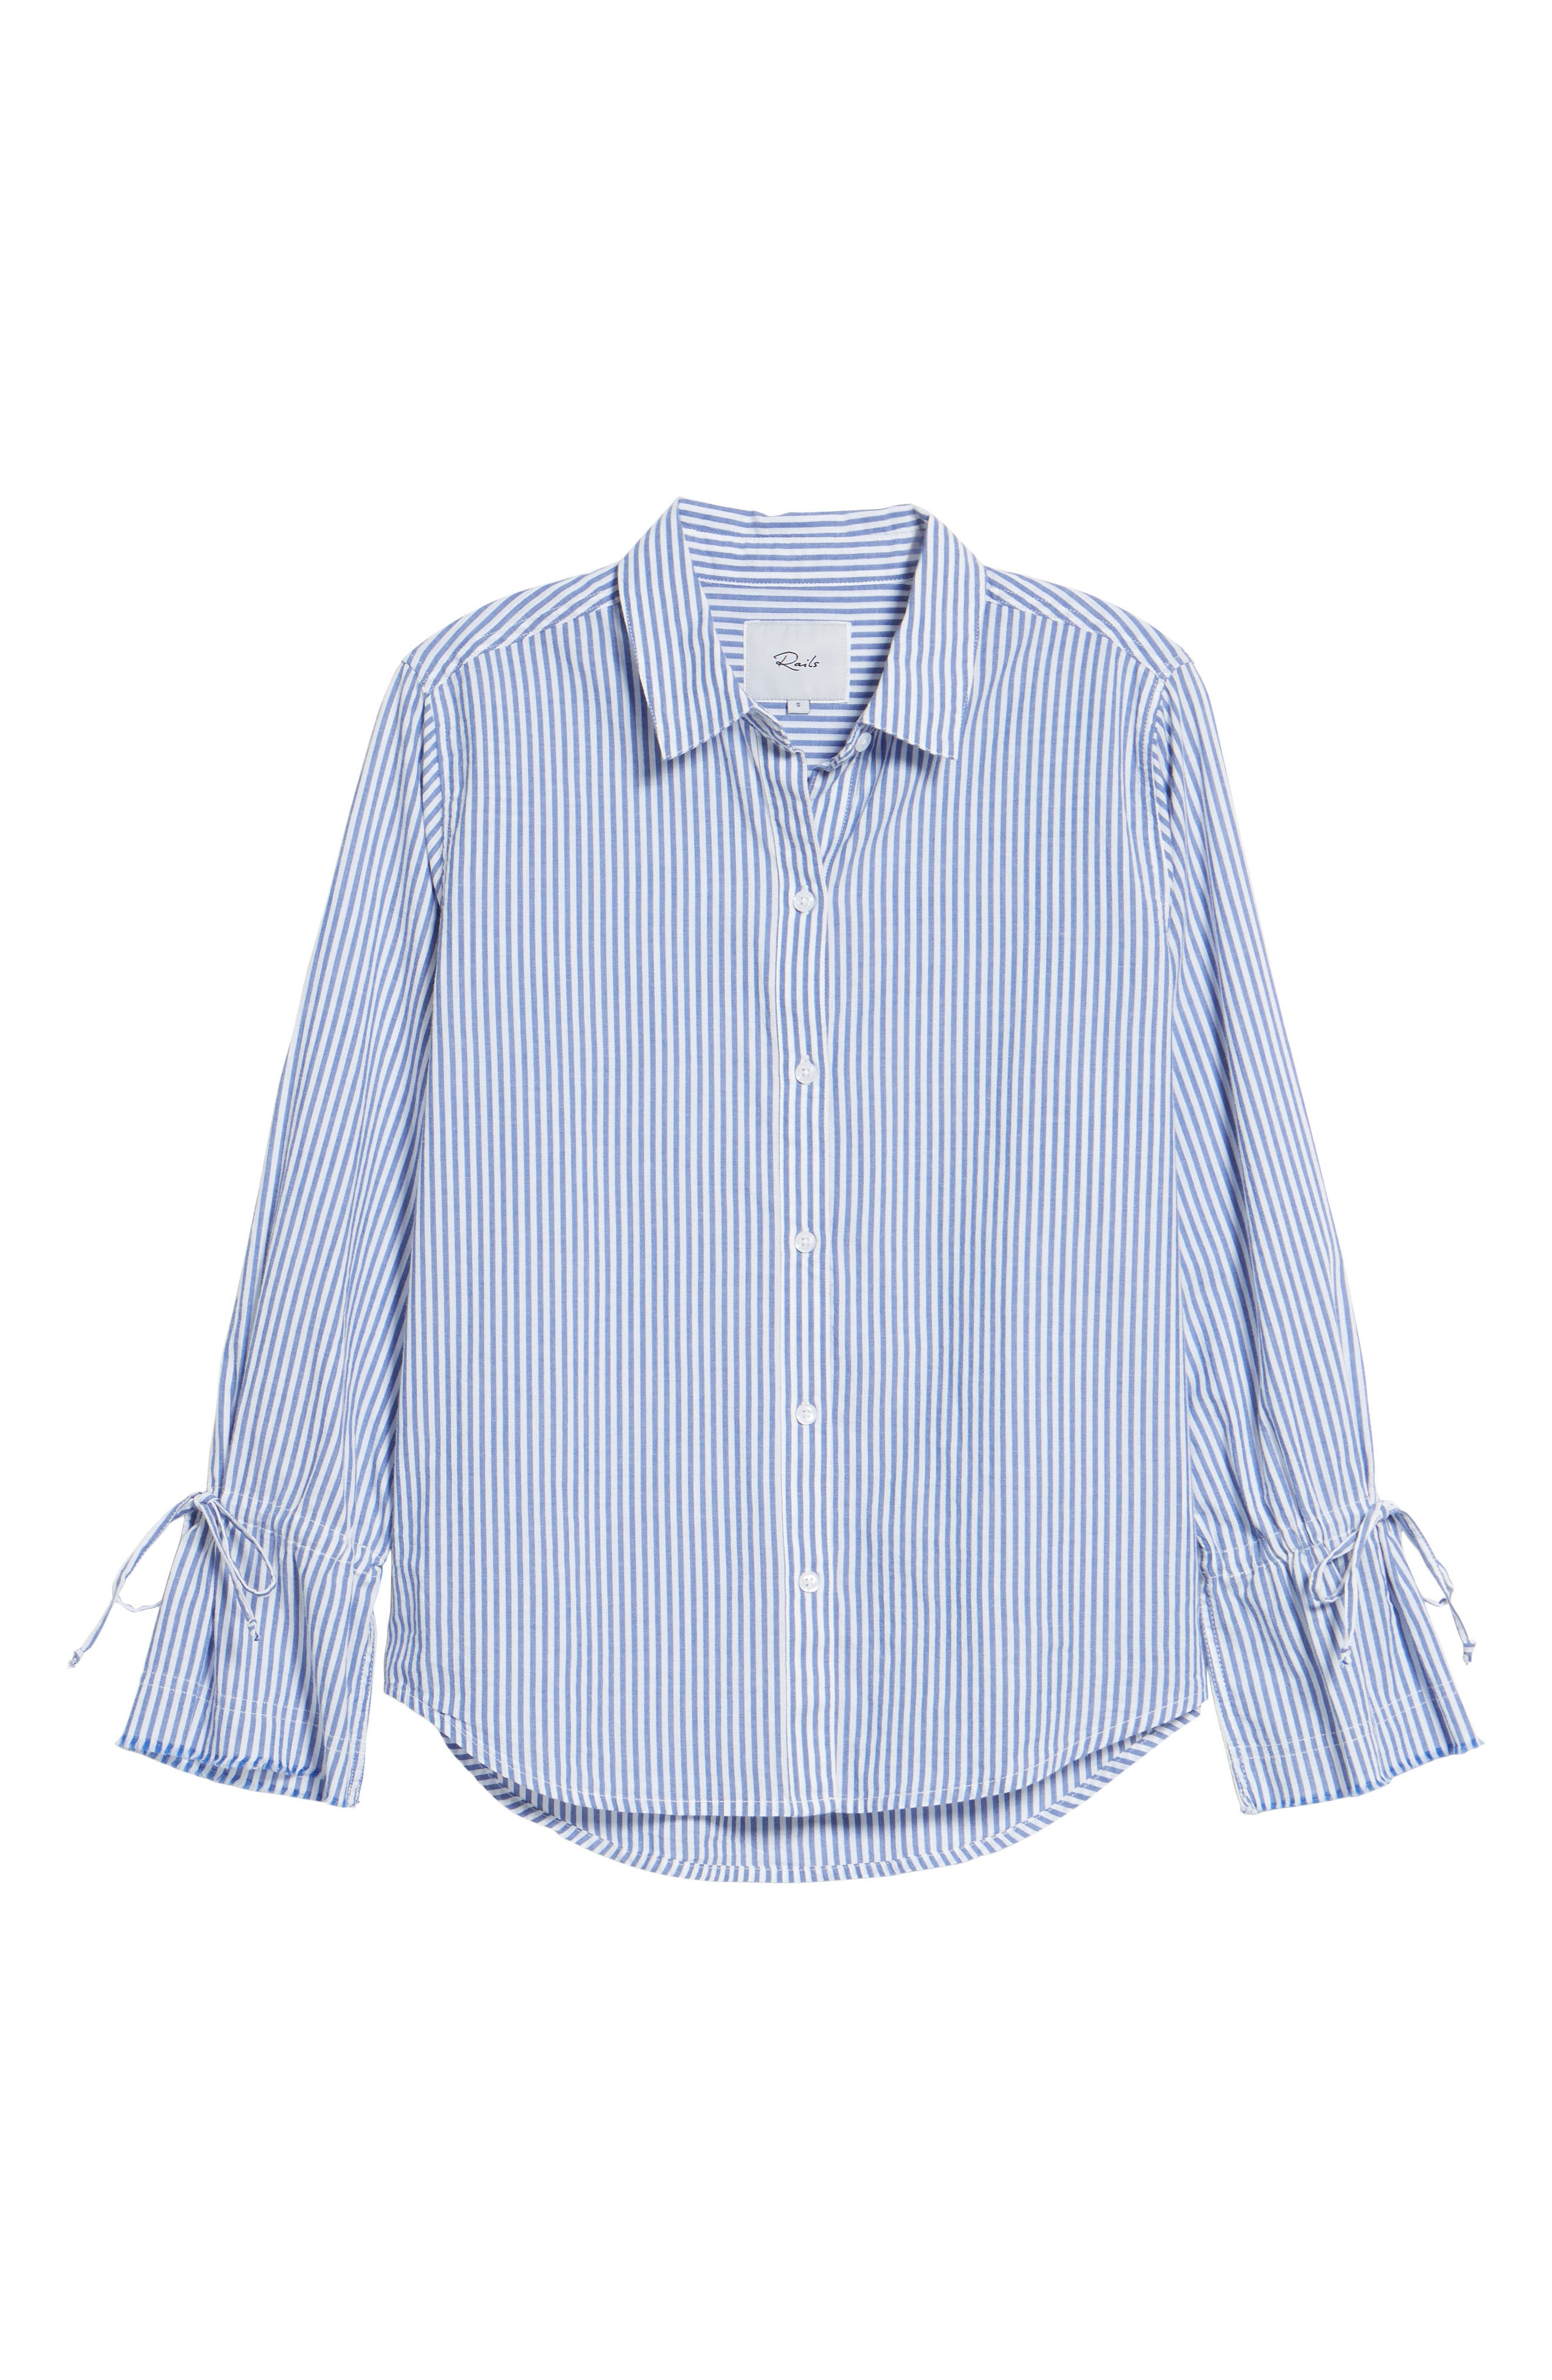 Astrid Tie Cuff Shirt,                             Alternate thumbnail 6, color,                             Banker Stripe